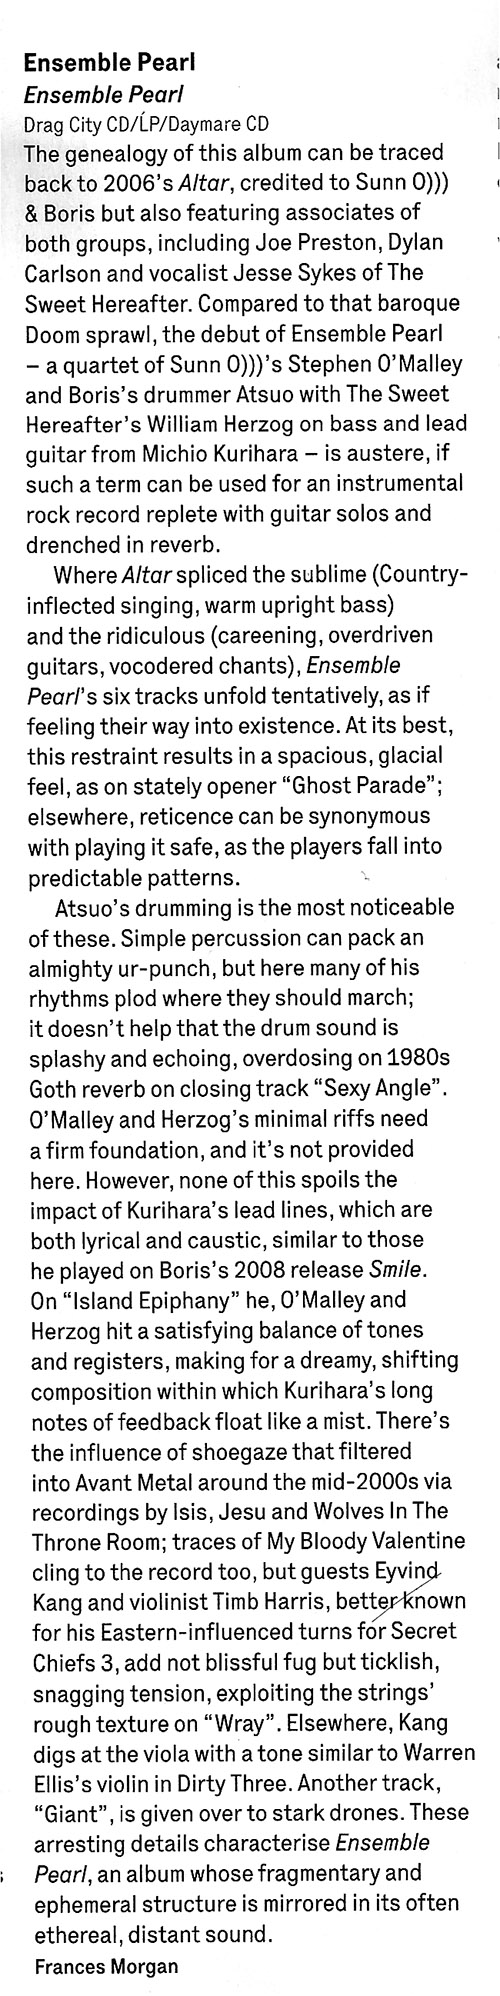 ENSEMBLE PEARL reviewed in this months WIRE magazine